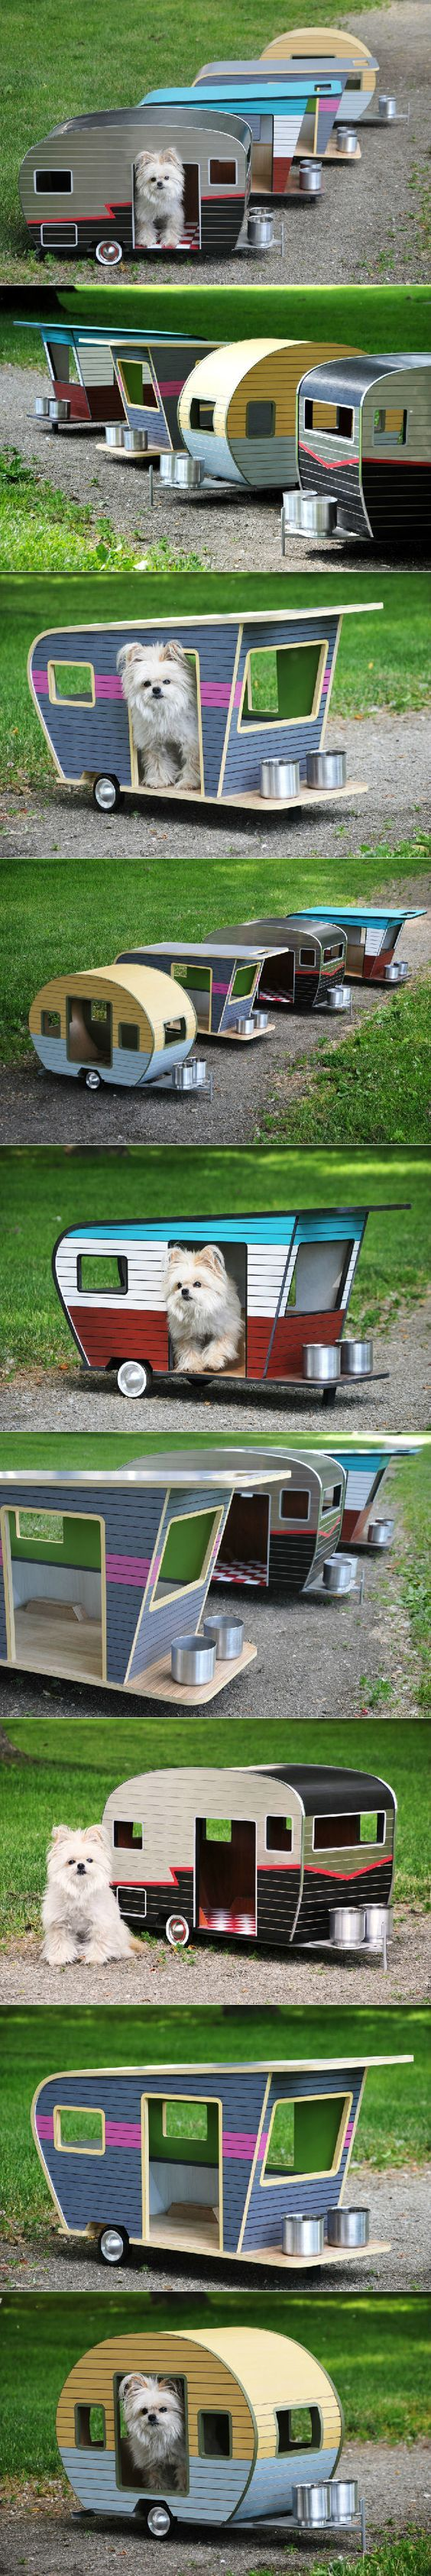 Cool Dog House Upgrade: Instantly-Endearing Pet Trailer Designs. Unique dog-sized trailers made from environmentally-friendly materials, including recyclable aluminum, plywood and plastic. Pet trailer can even have a lighted interior, wireless speakers, and an adorable personalized license plate.: